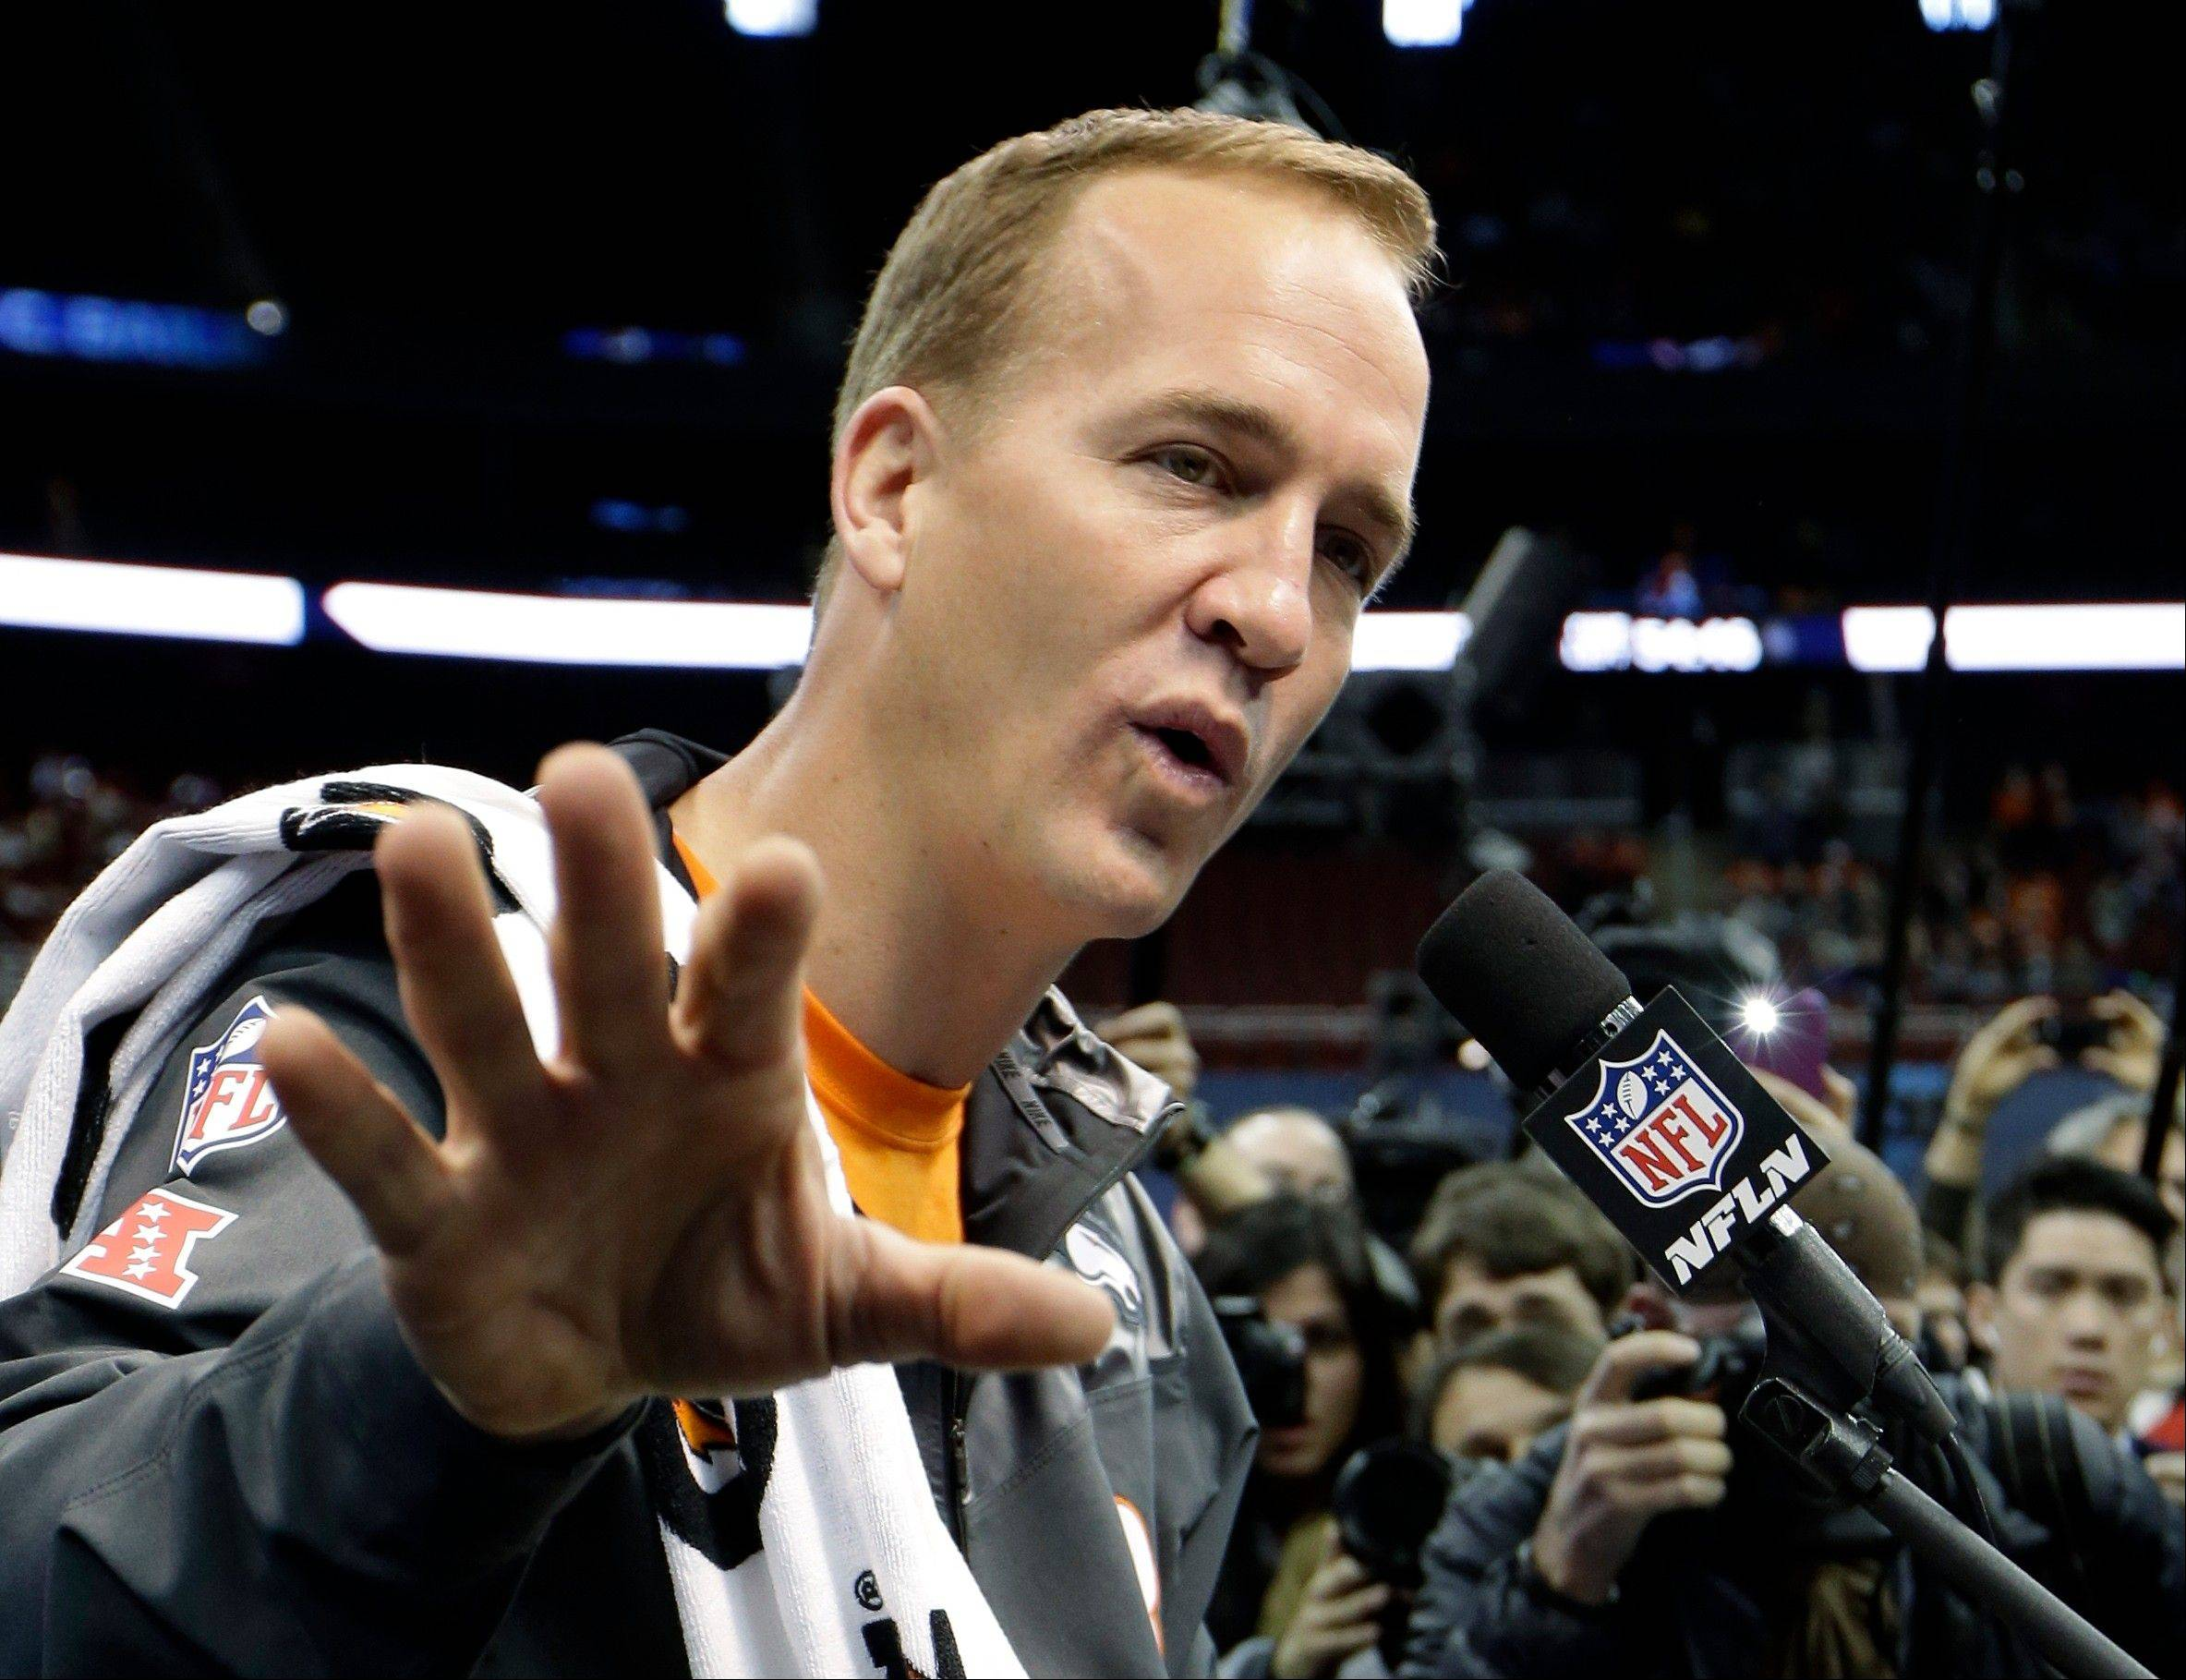 Denver Broncos' Peyton Manning answers a question during media day for the NFL Super Bowl XLVIII football game Tuesday, Jan. 28, 2014, in Newark, N.J.